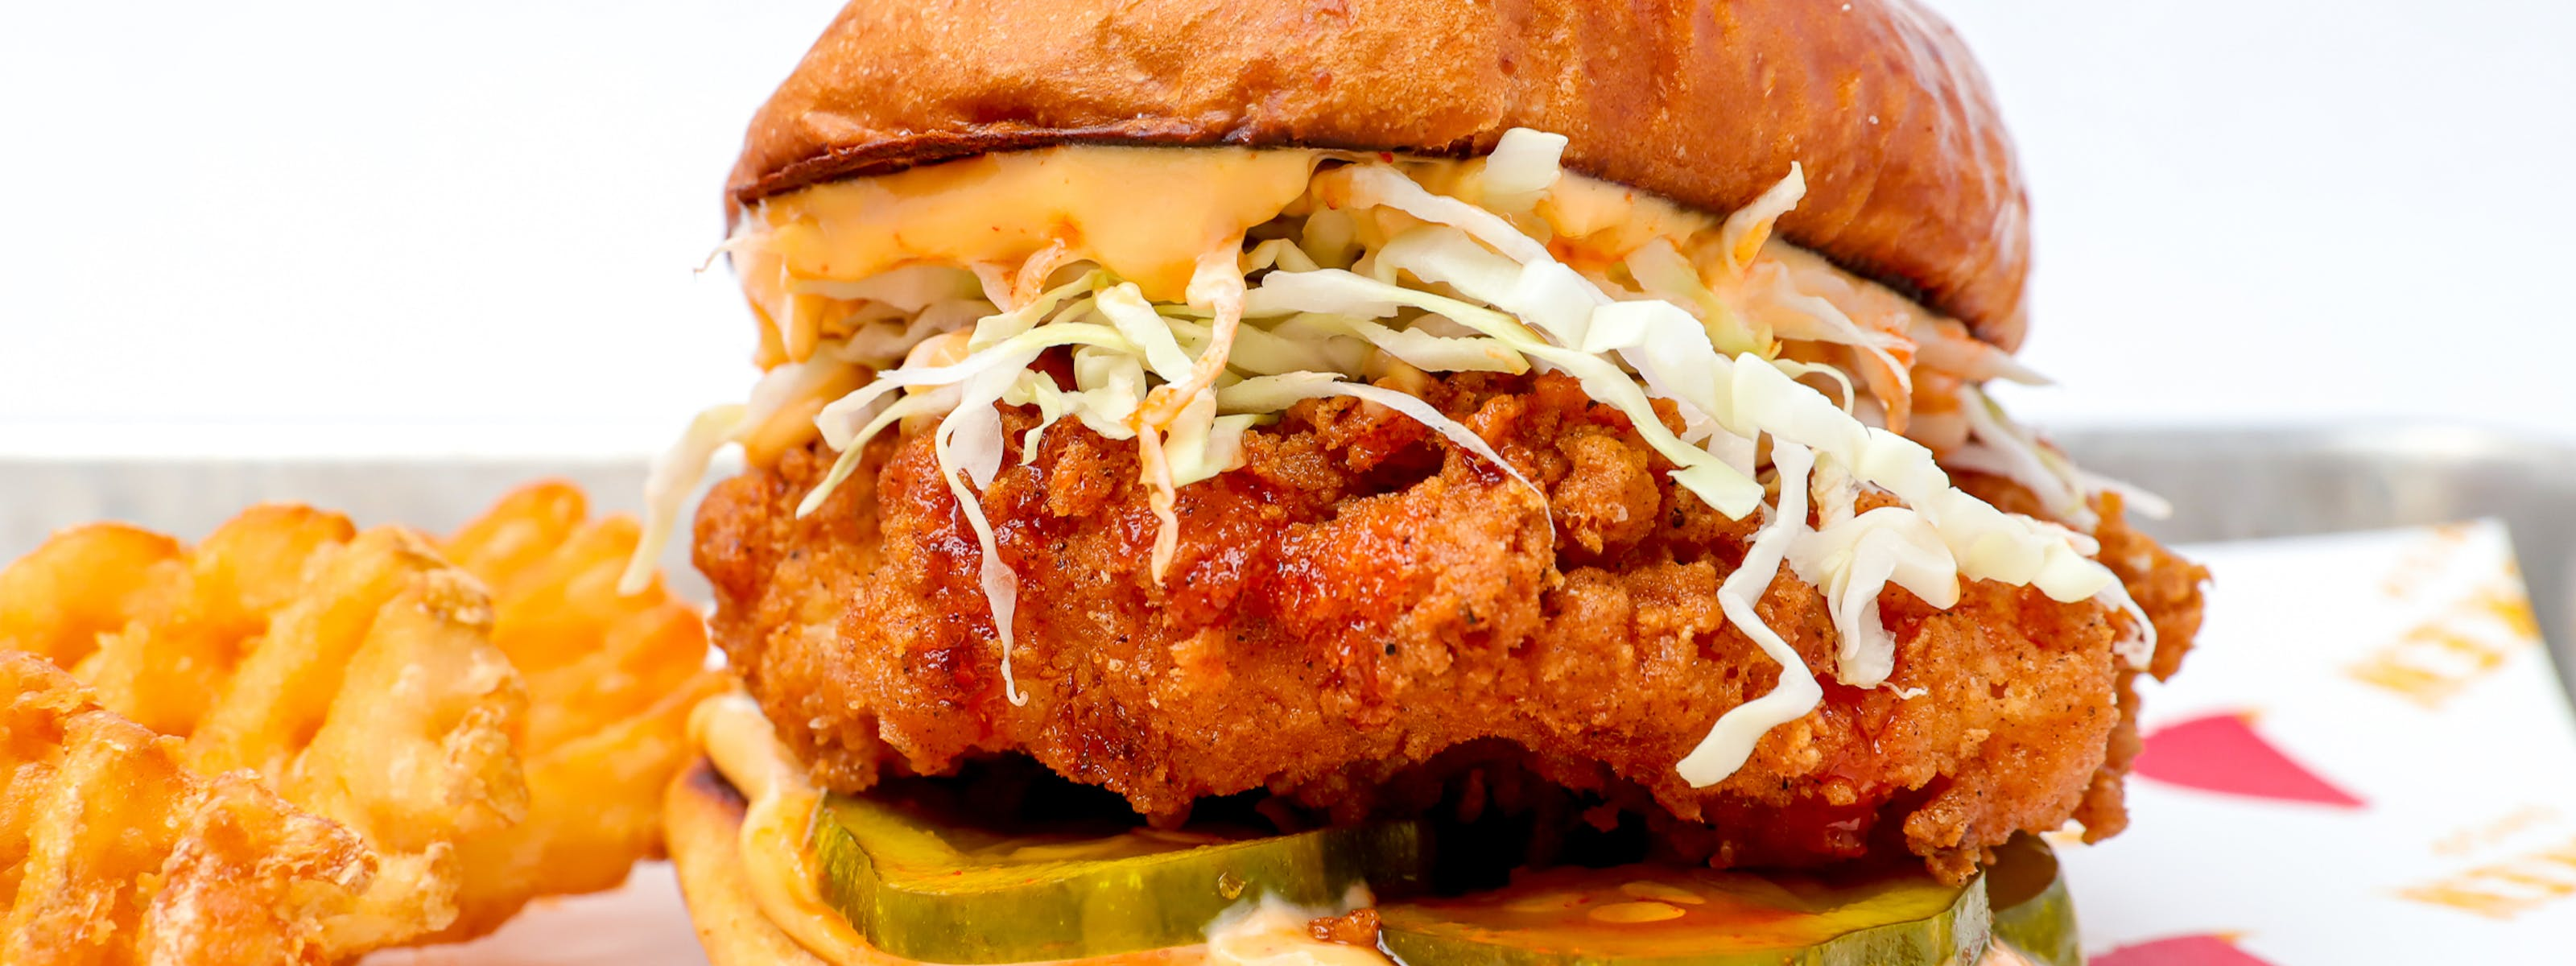 The Best Fried Chicken Sandwiches In Chicago - Chicago - The Infatuation